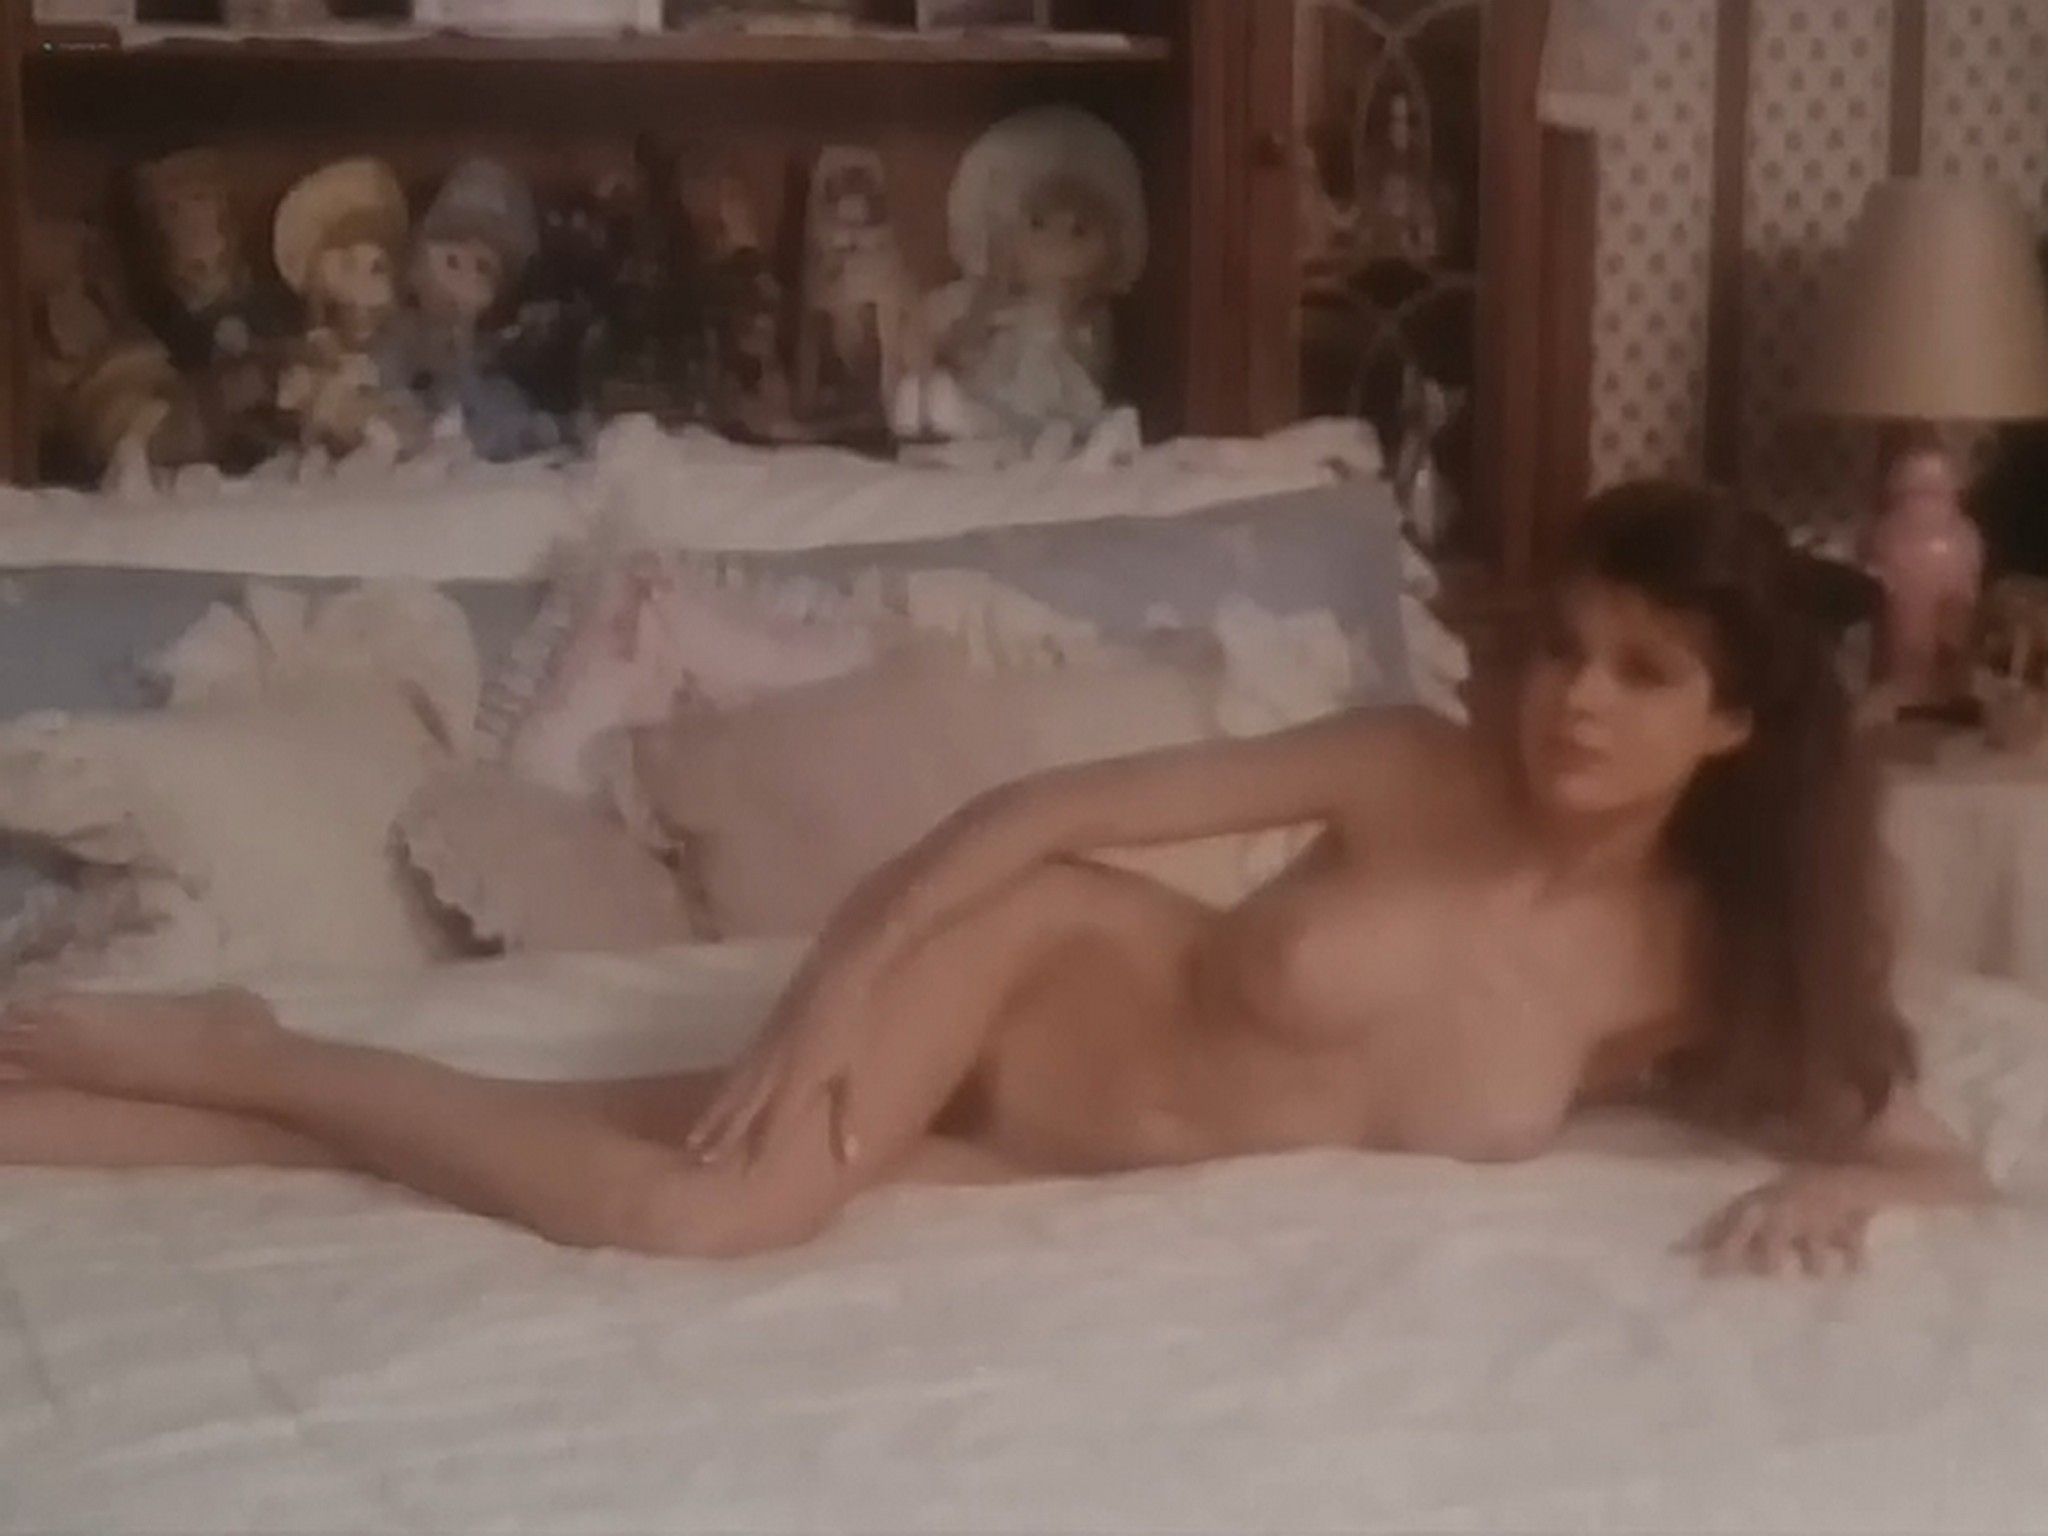 Kim Evenson nude full frontal Monique Gabrielle Sylvia Kristel all nude bush and full frontal The Big Bet 1985 DVDRip 8